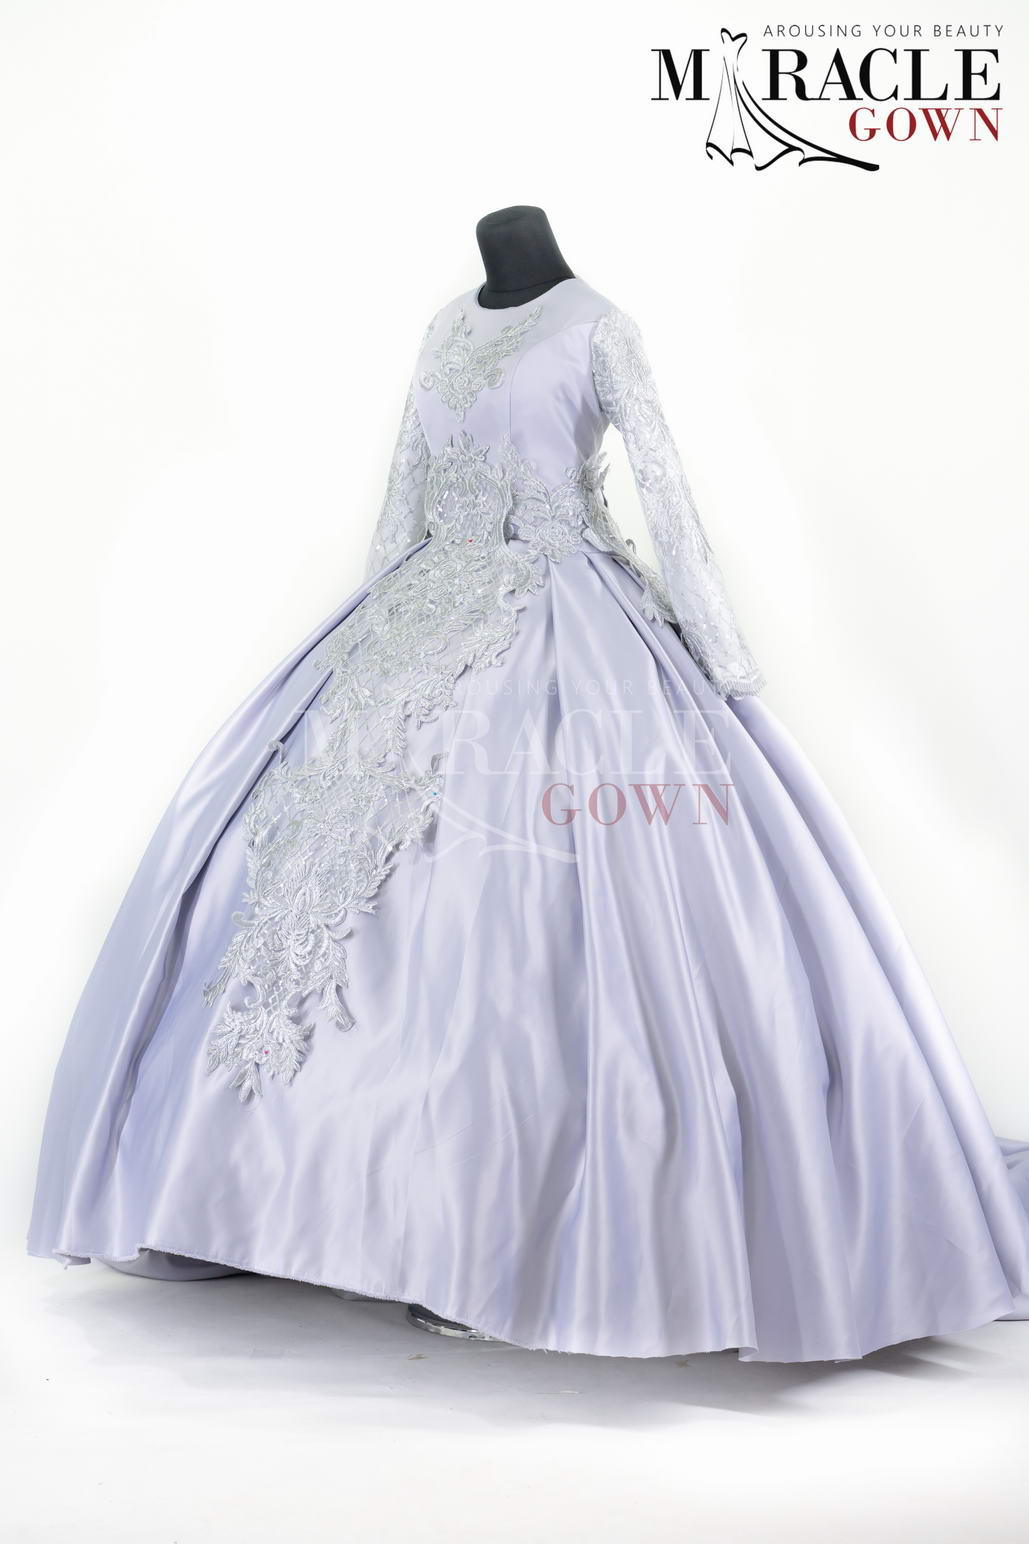 Sewa Gaun Surabaya - Miracle Gown - Elegant Snow Brocade Dress